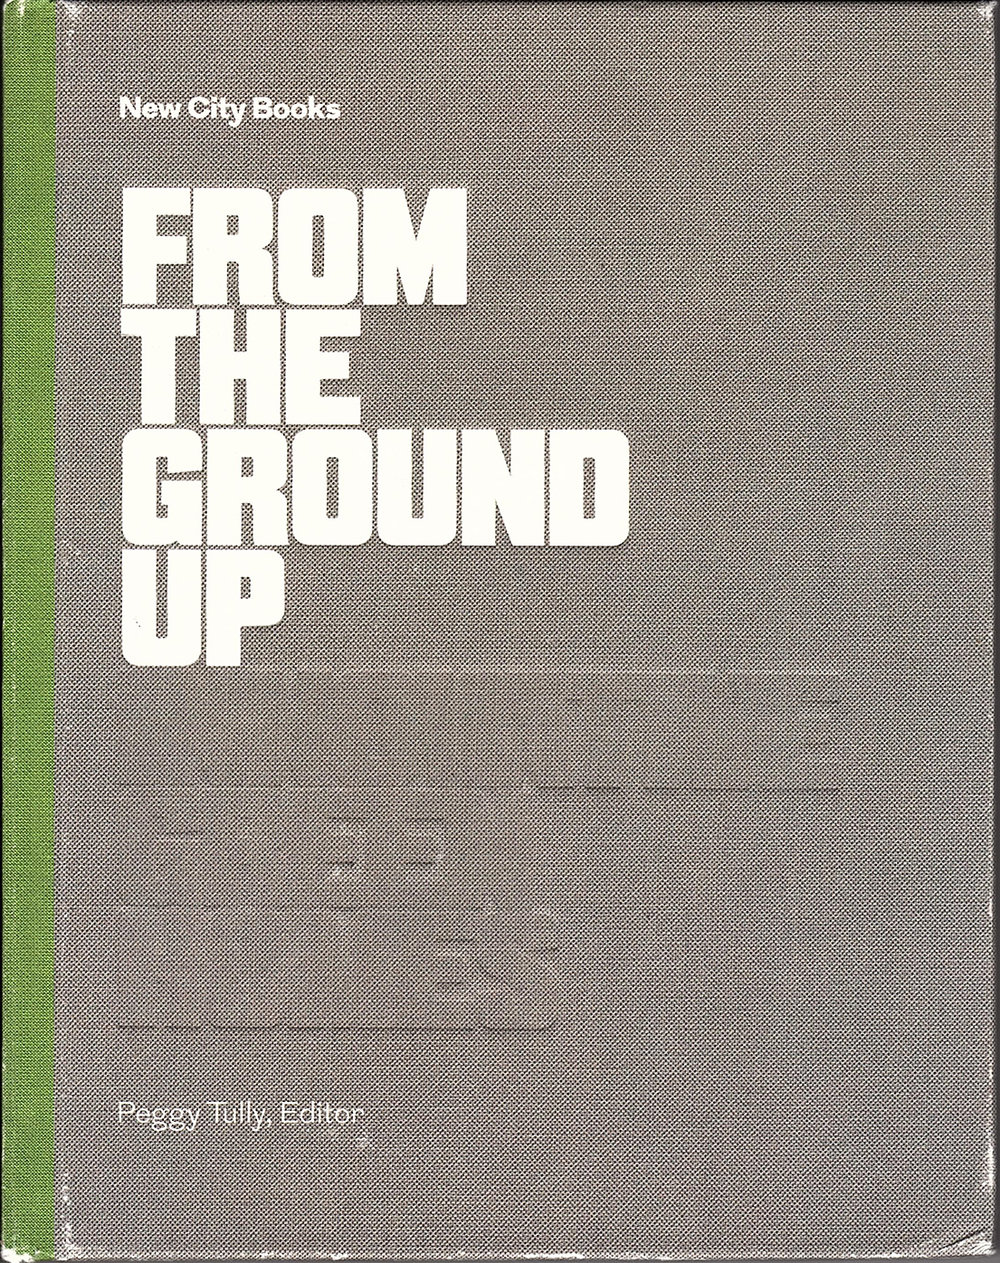 101 from the ground up pub cover mr.jpg